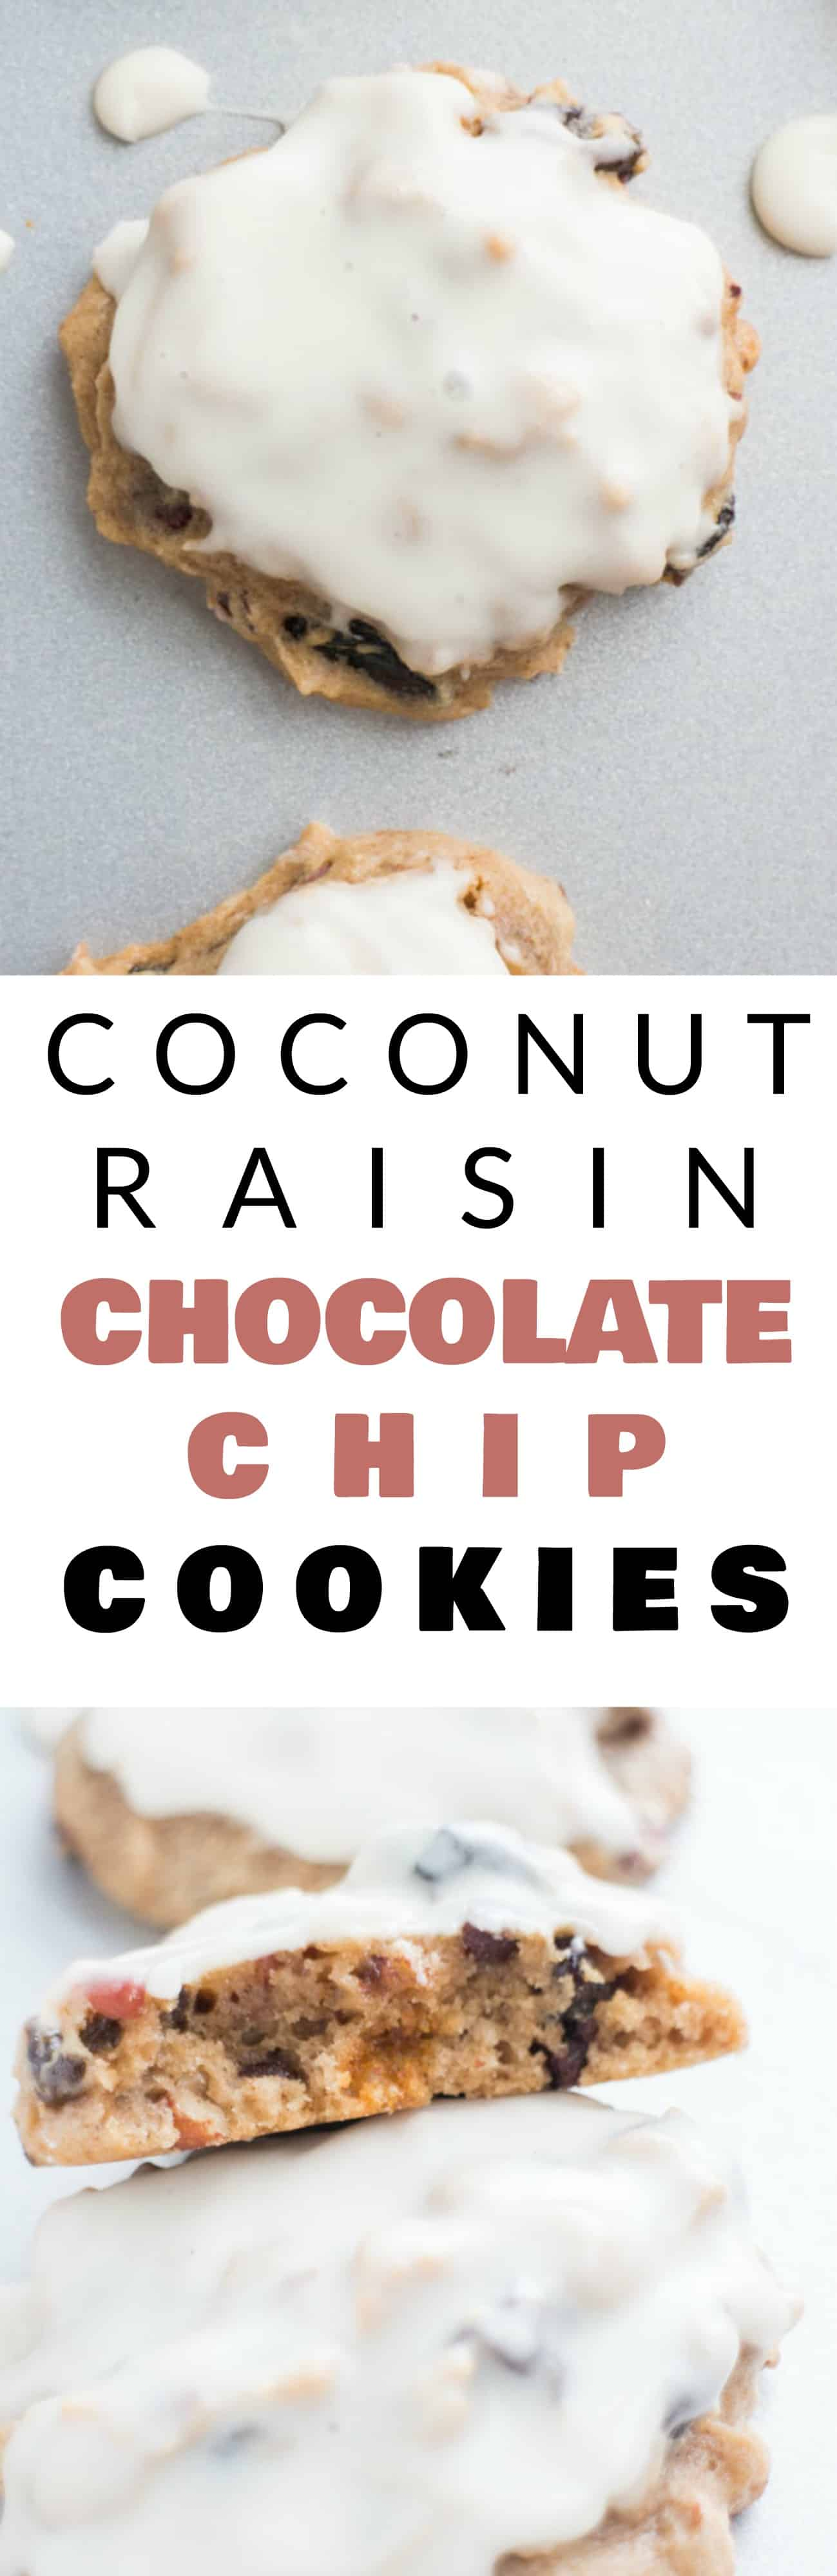 CHEWY Coconut Raisin Chocolate Chip Cookies with AMAZING sugar glaze on top! This easy, healthy recipe is going to become your new favorite cookie! The cookies are loaded with raisins and pecans so they make the perfect breakfast or dessert - my entire family loves them